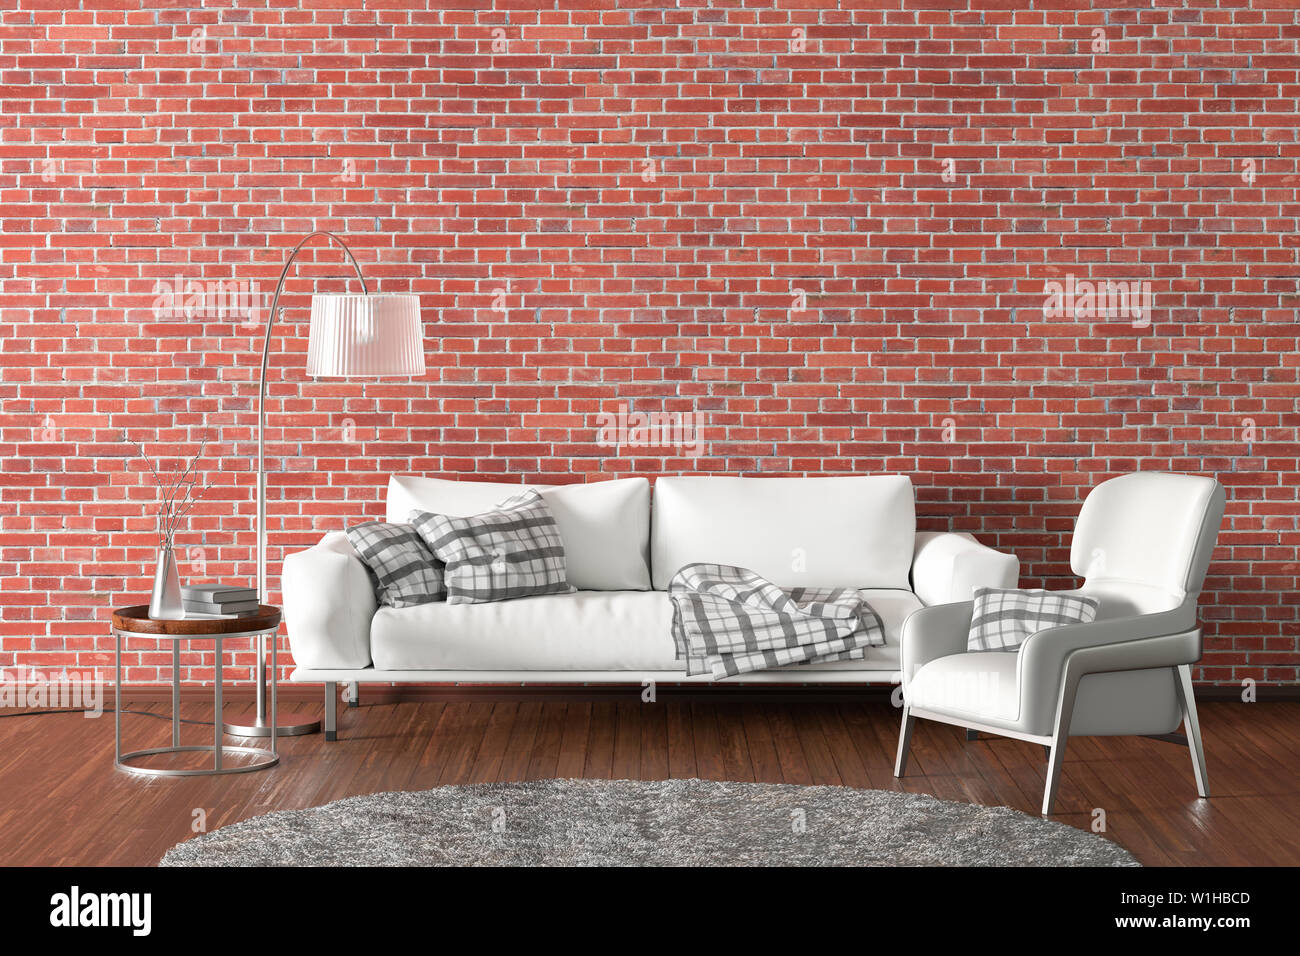 Interior Of Modern Living Room With Red Brick Wall And